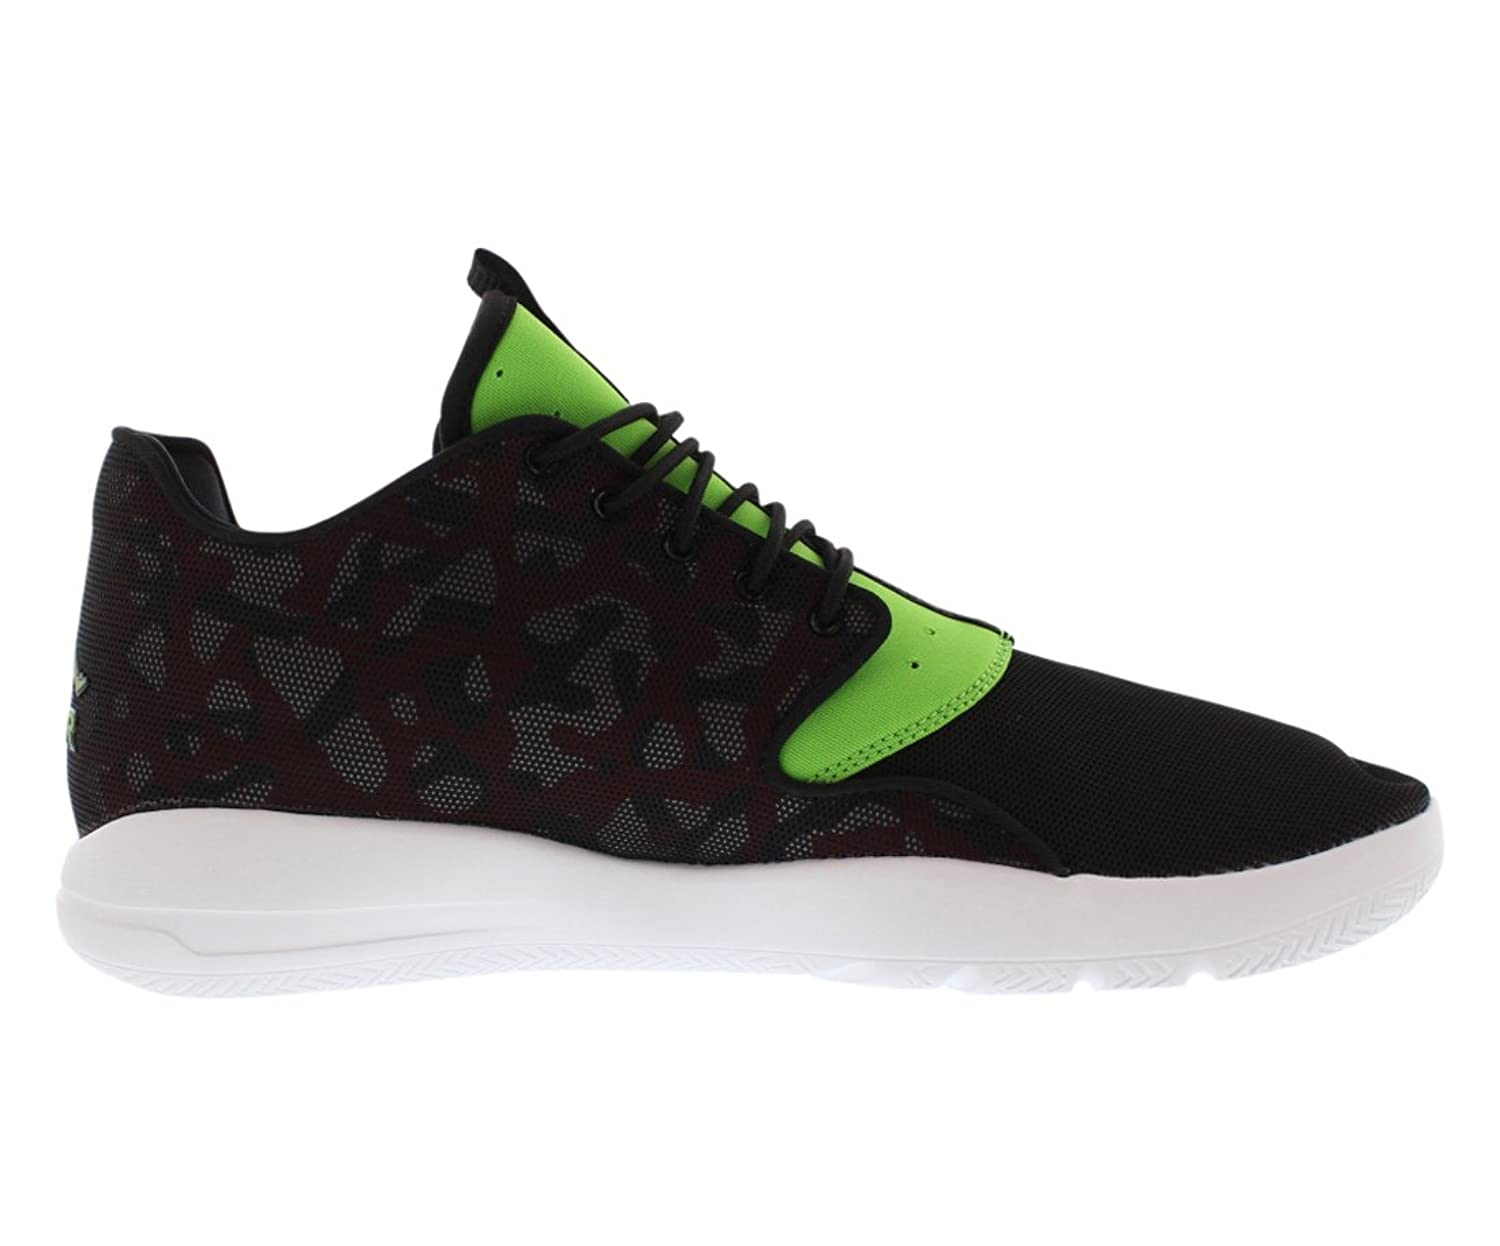 Jordan Air Eclipse Chaqueta Chaqueta de running zapatos tamaño running  Black B06X6L3KTH Green University Red 63b067b 21ff1af2350